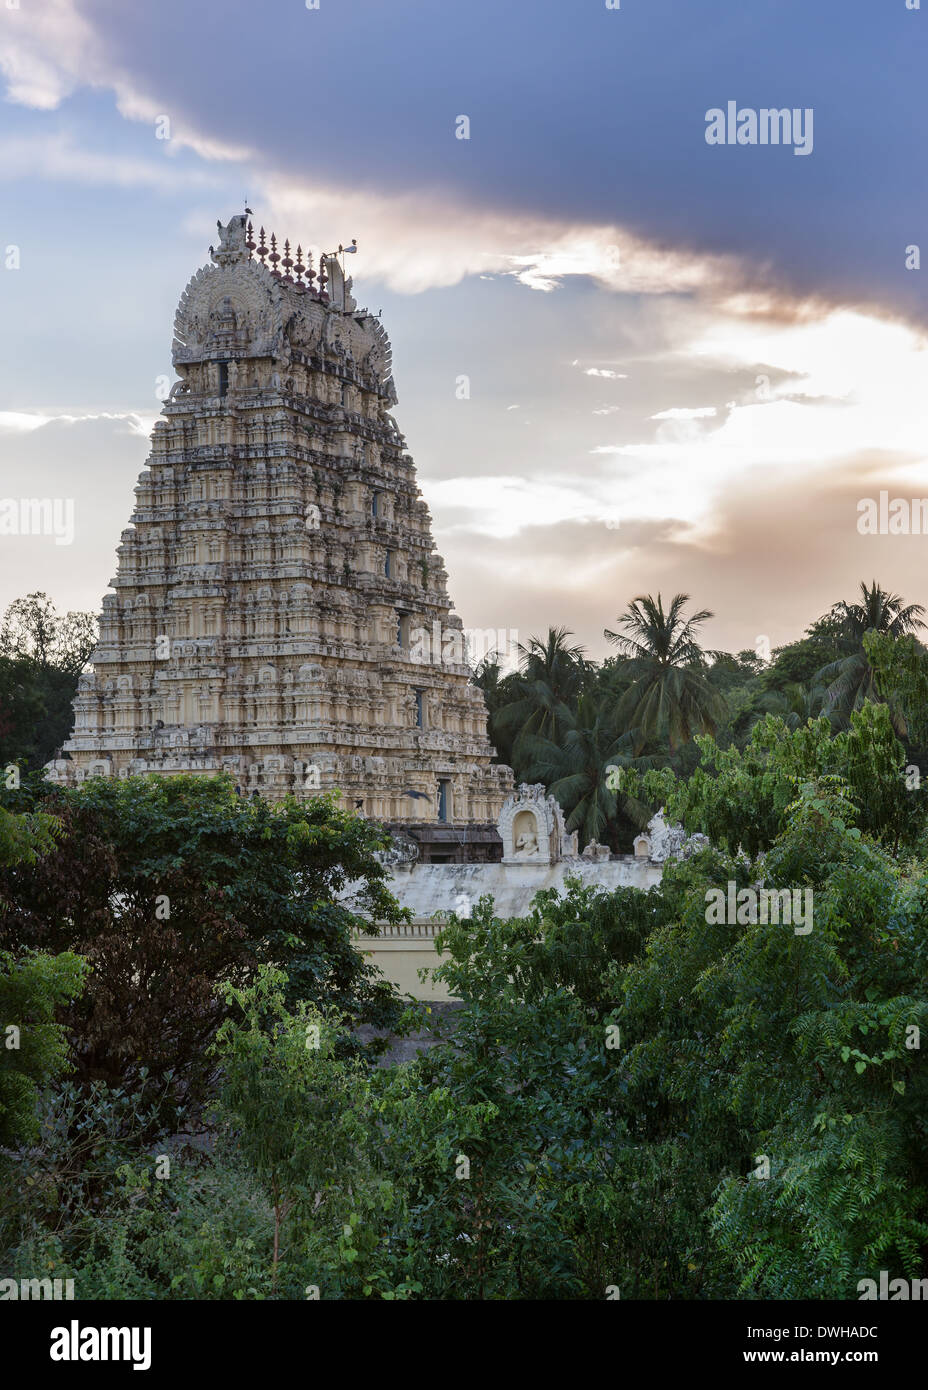 Evening storm gathers over Vellore fort and the Gopuram of Shiva temple in Tamil Nadu, India. Stock Photo